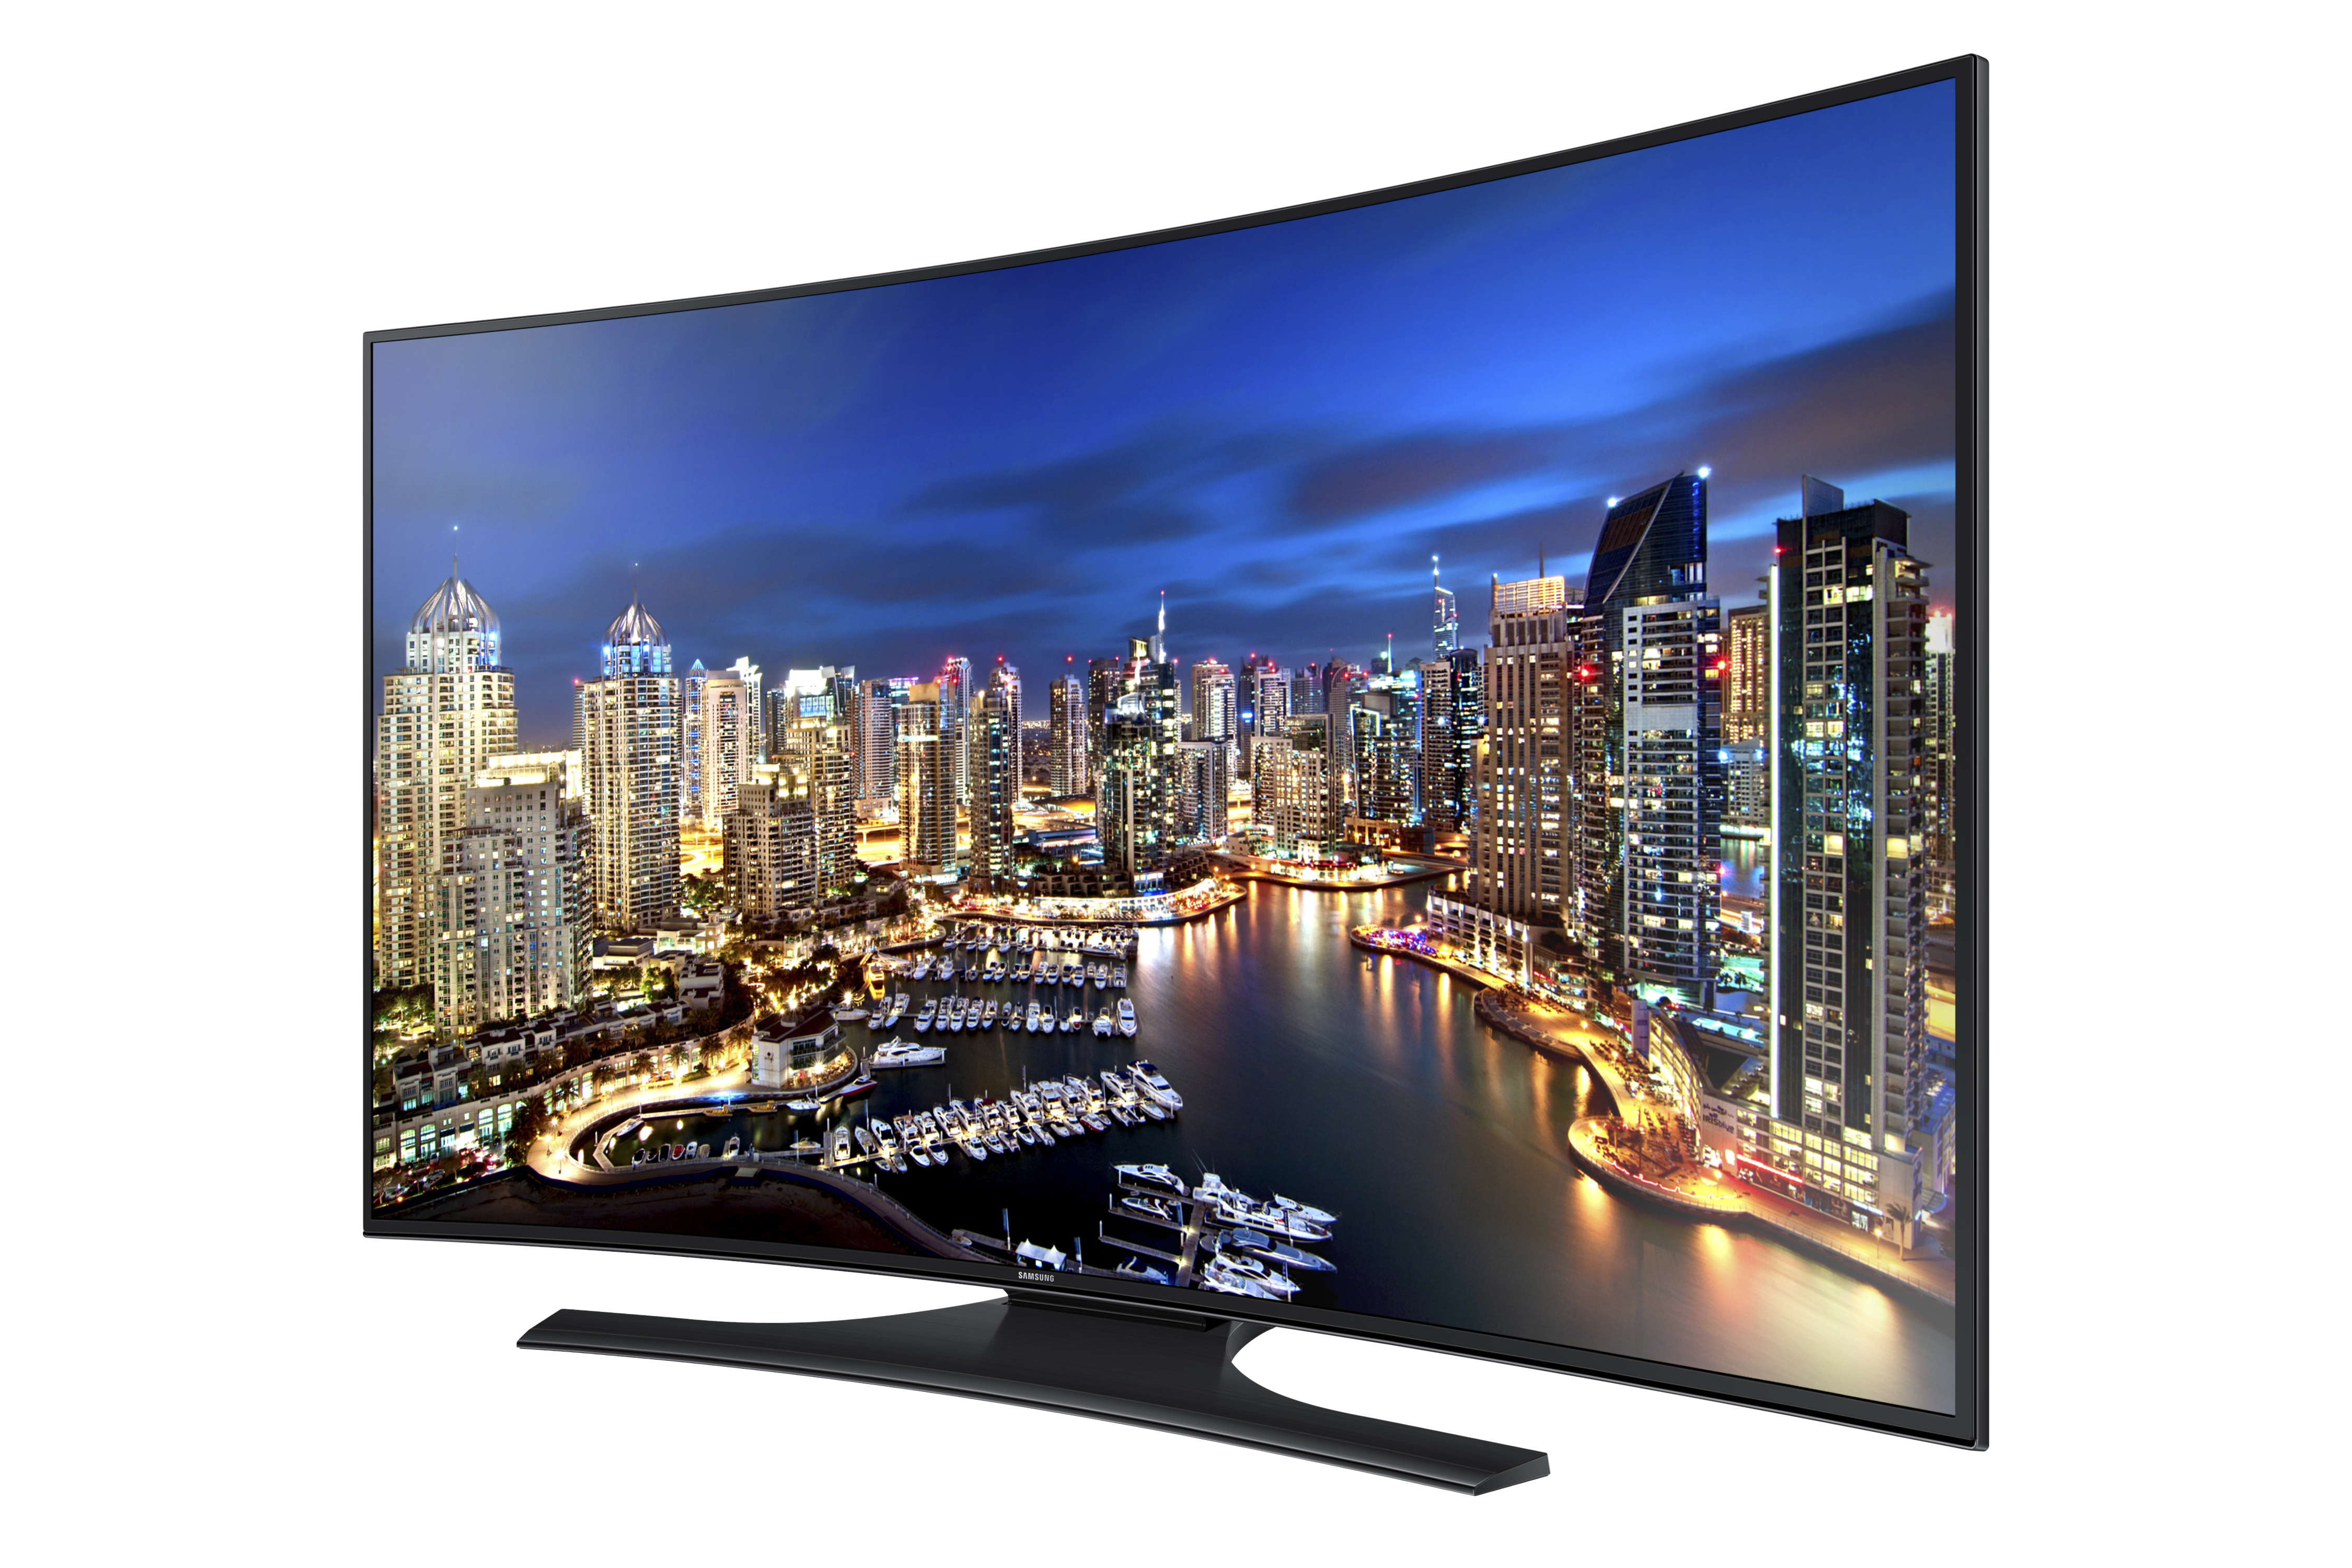 Samsung Expands Its Uhd Tv Lineup With New Super Sized Model And 2 Series Business Wire